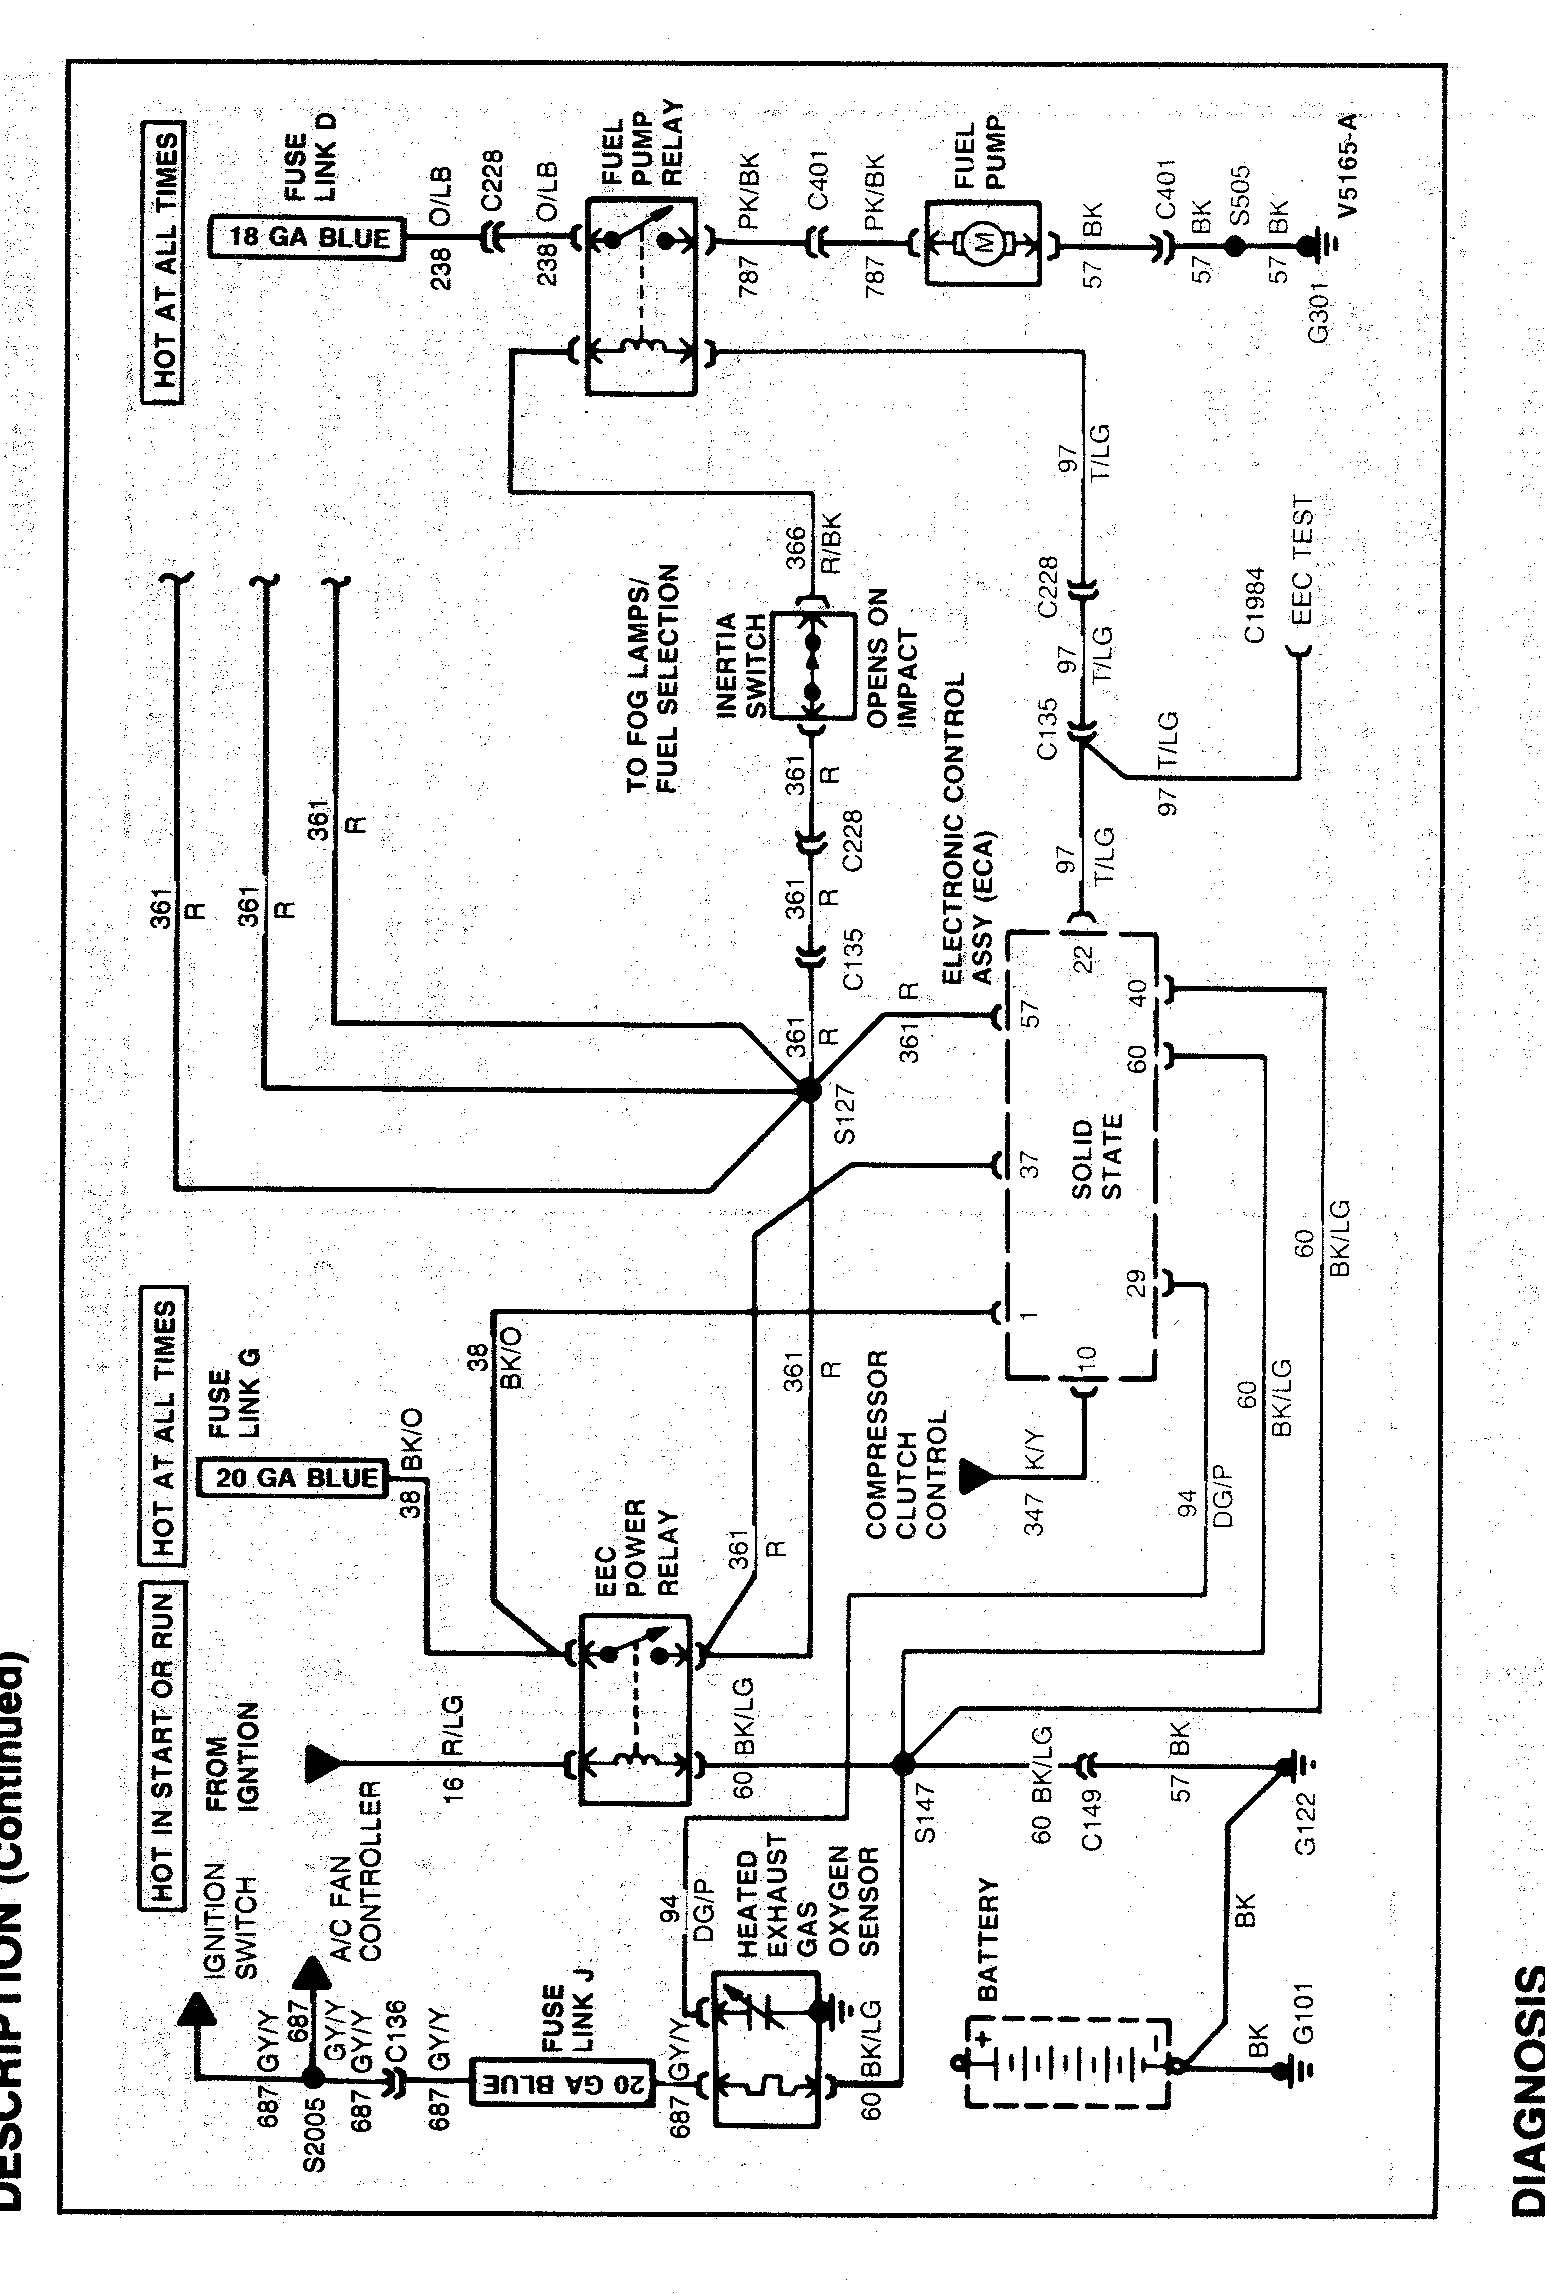 2001 Ford Explorer Sport Trac Electrical Schematic